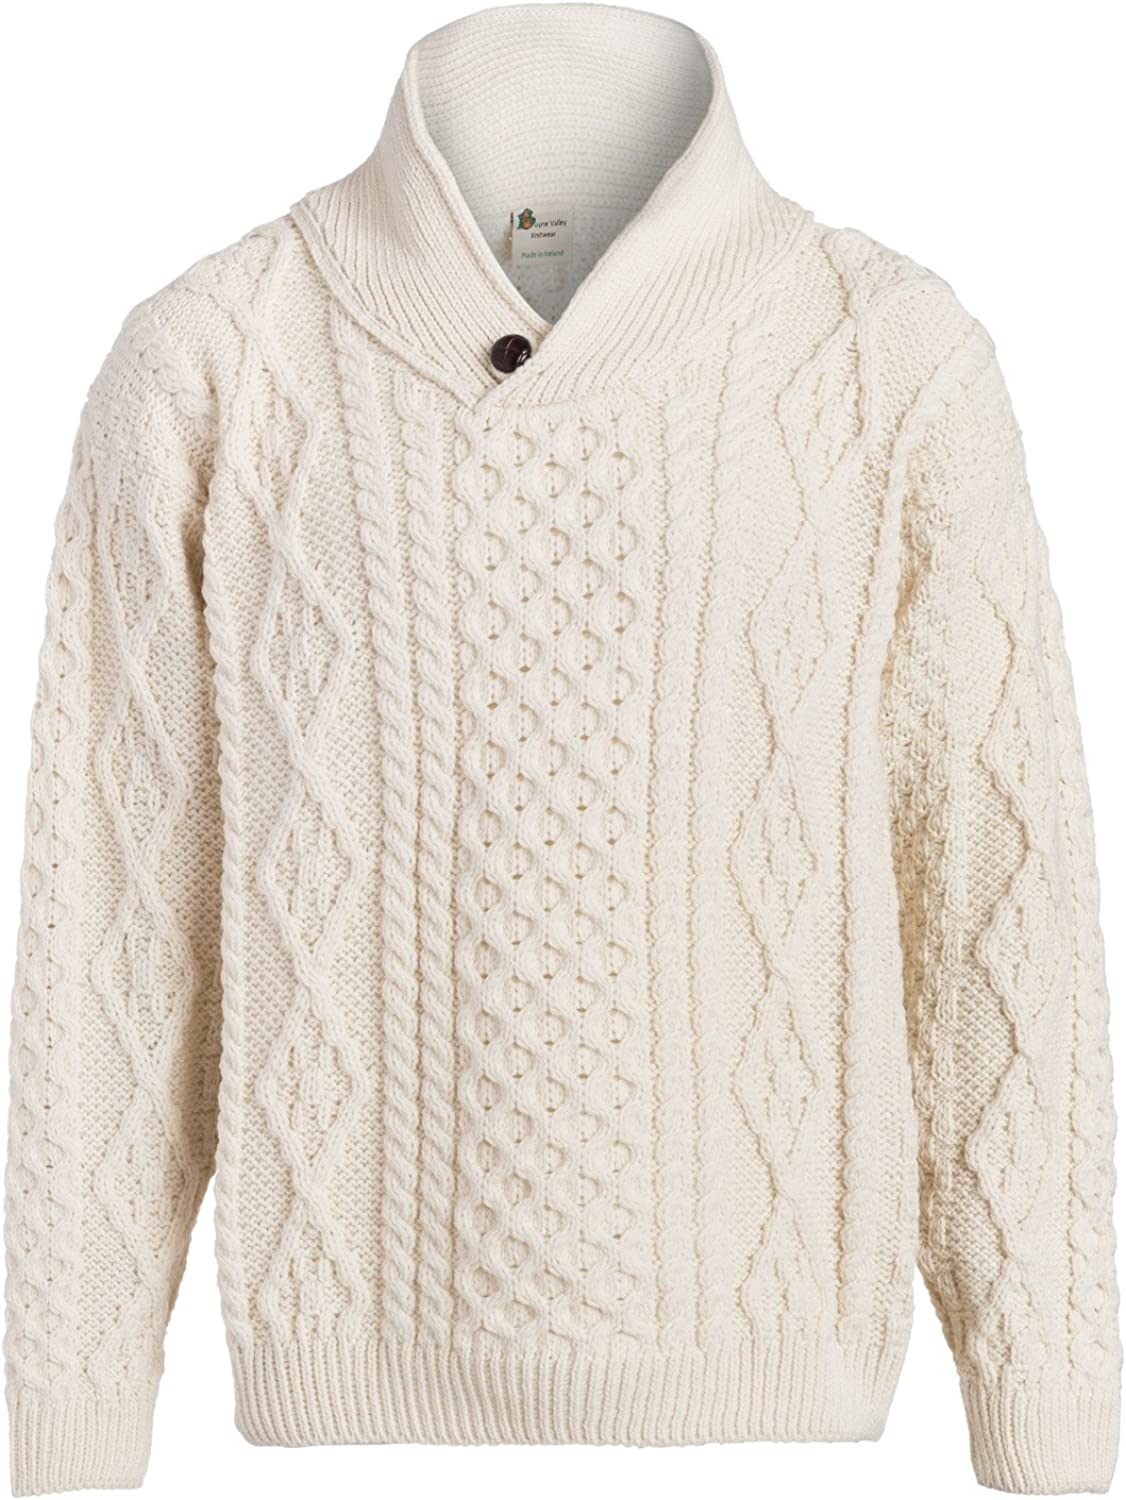 Boyne Valley Knitwear Mens One Button Shawl Wool Collar Cable Sweater